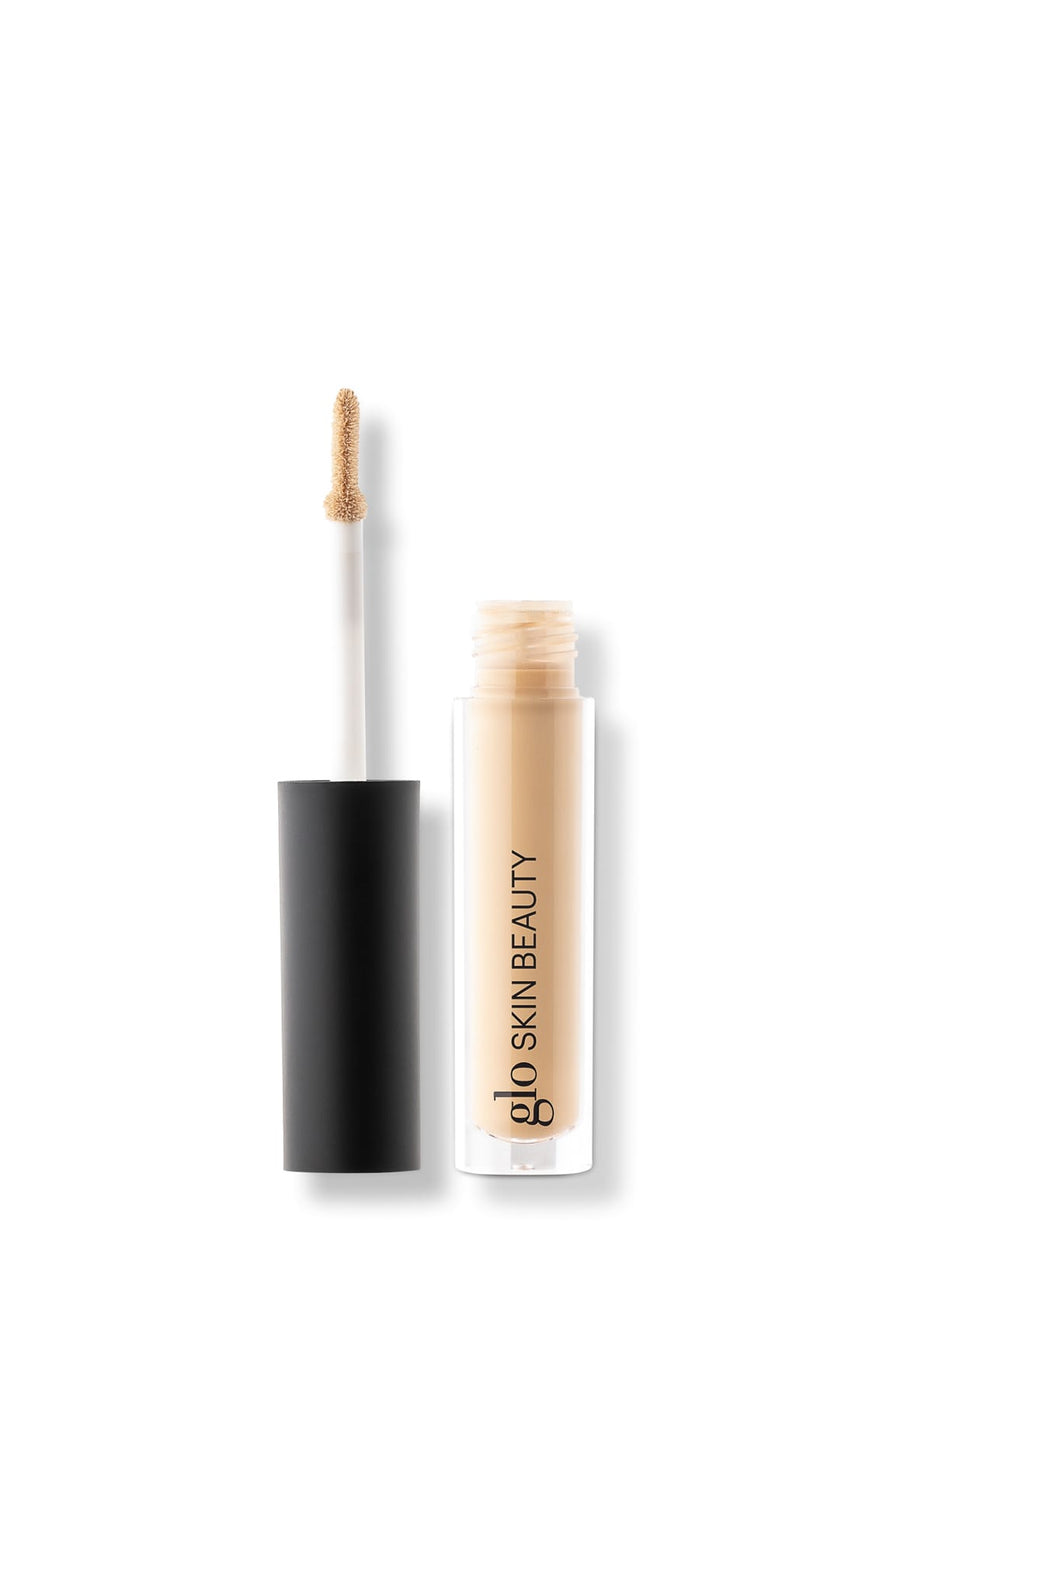 Glo Liquid Bright Concealer - Brighten